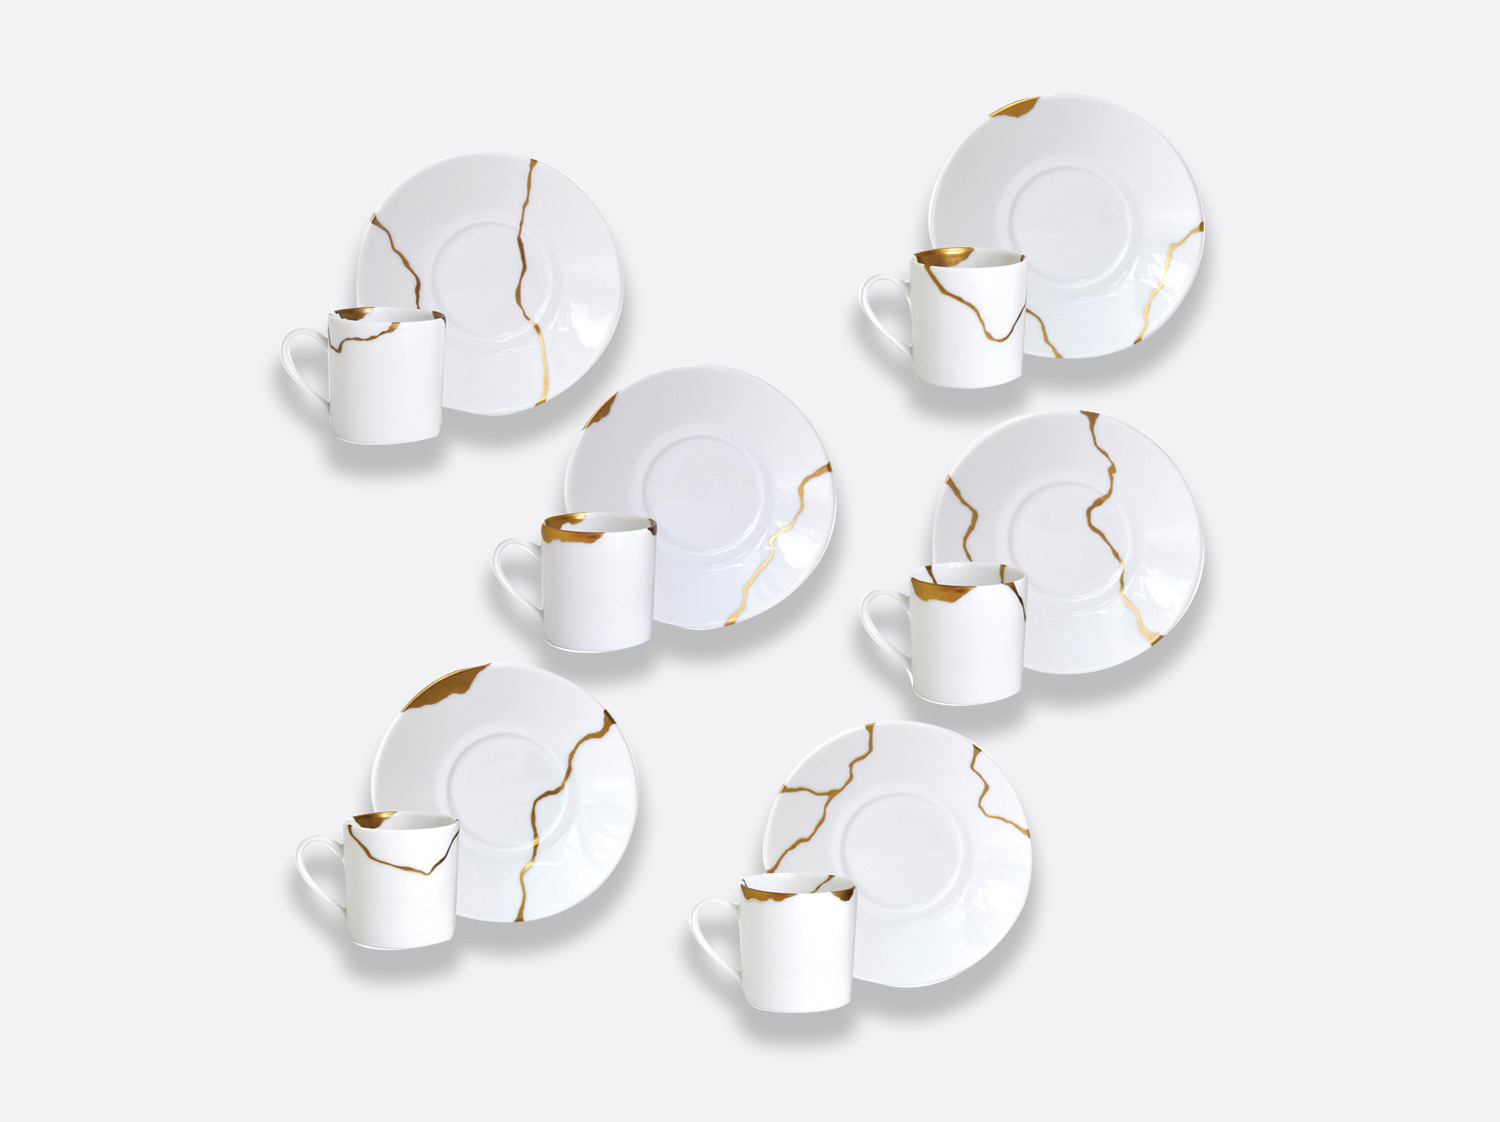 Coffret de 6 tasses et soucoupes à café assorties 8 cl en porcelaine de la collection Kintsugi Bernardaud